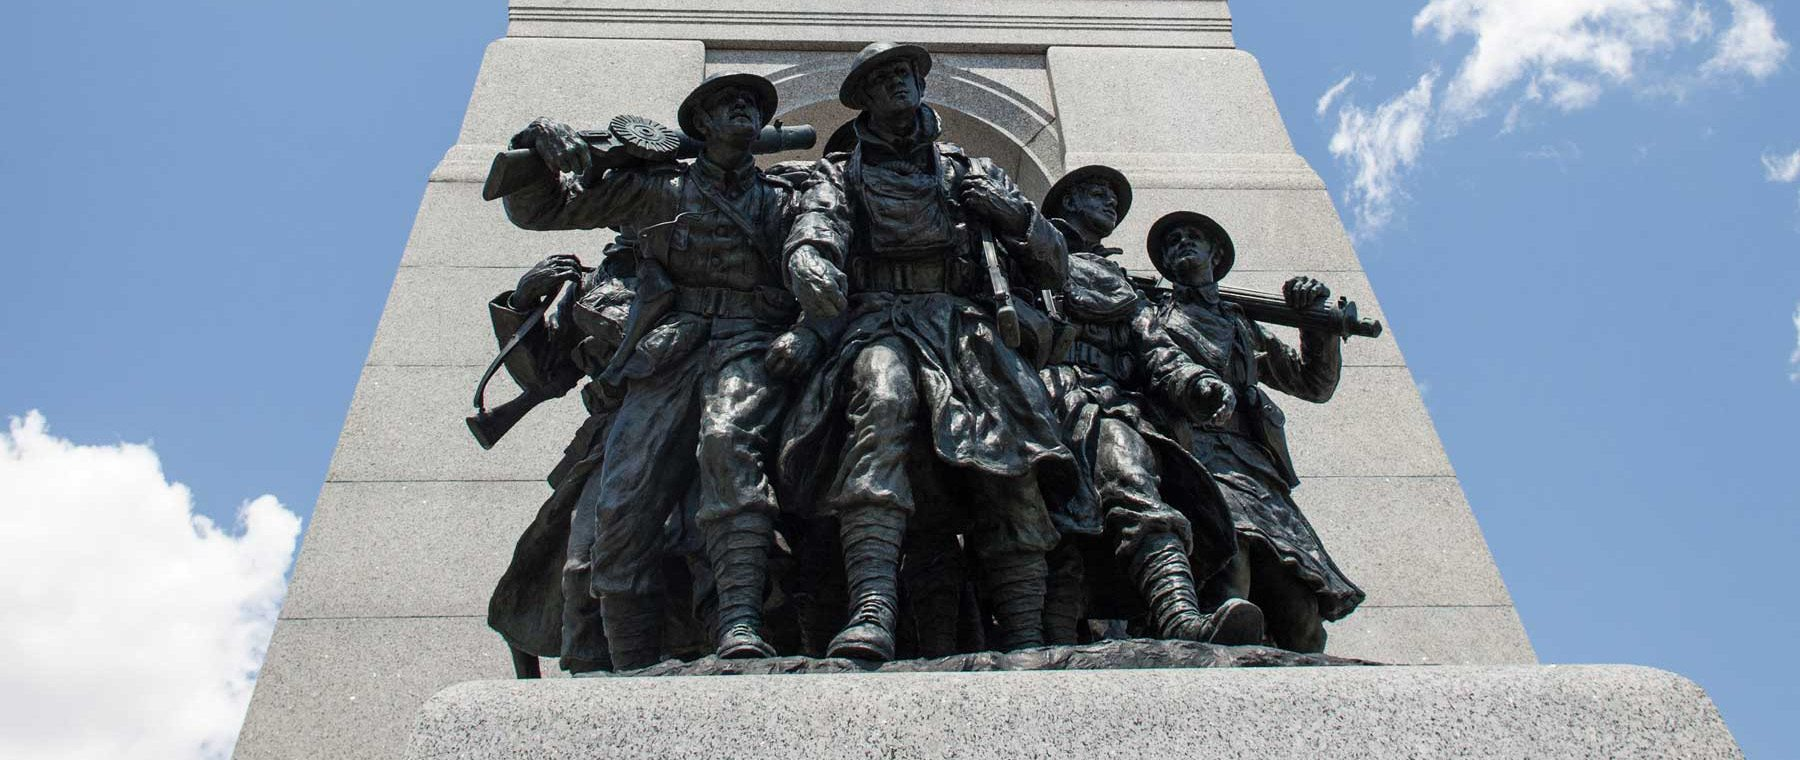 Ottawa abounds in echoes of wartime sacrifice